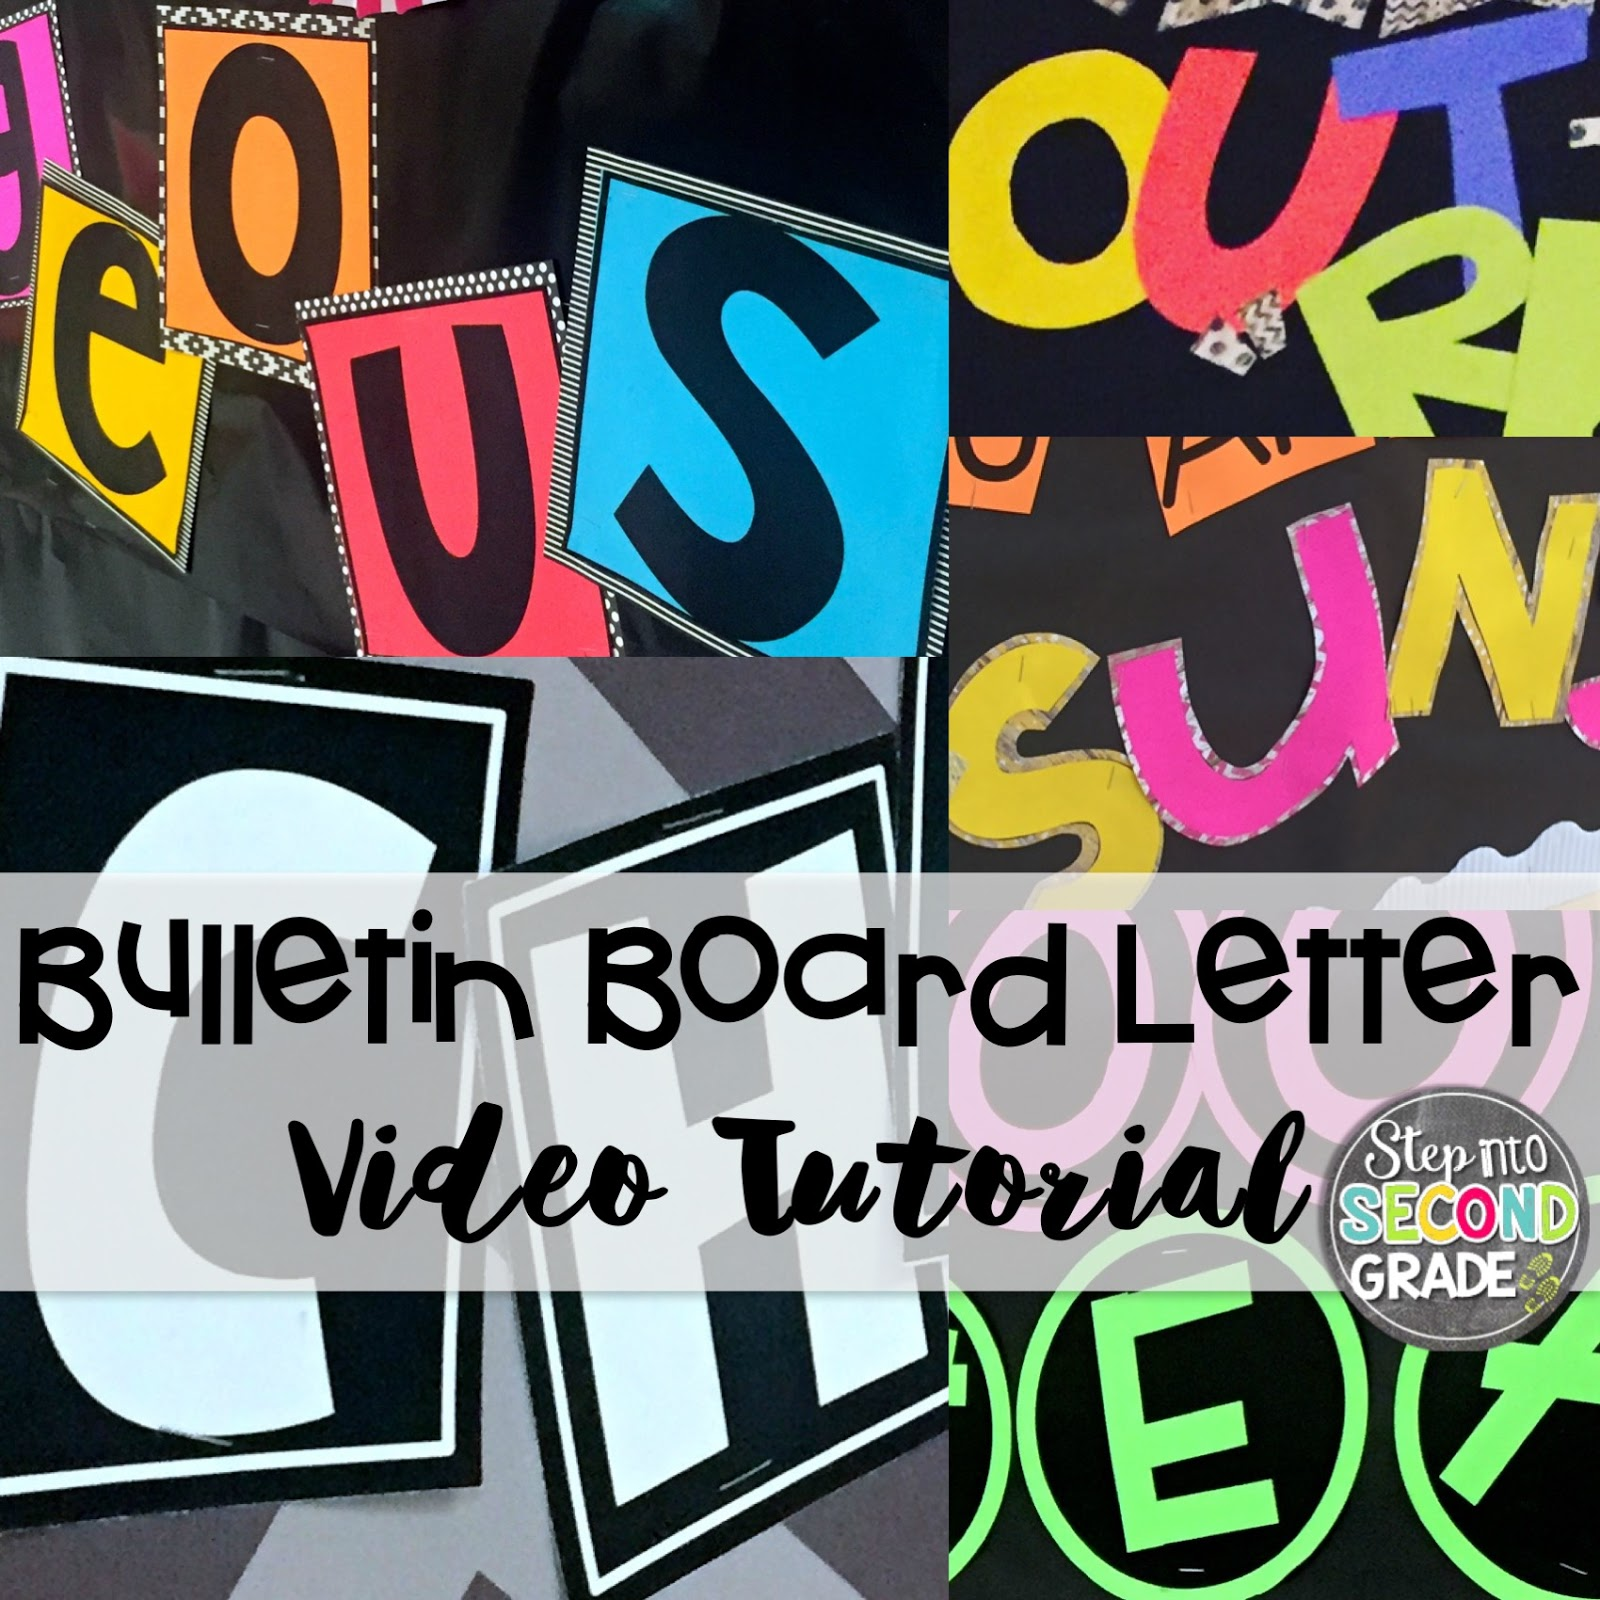 letters for bulletin boards templates - step into 2nd grade with mrs lemons bulletin boards